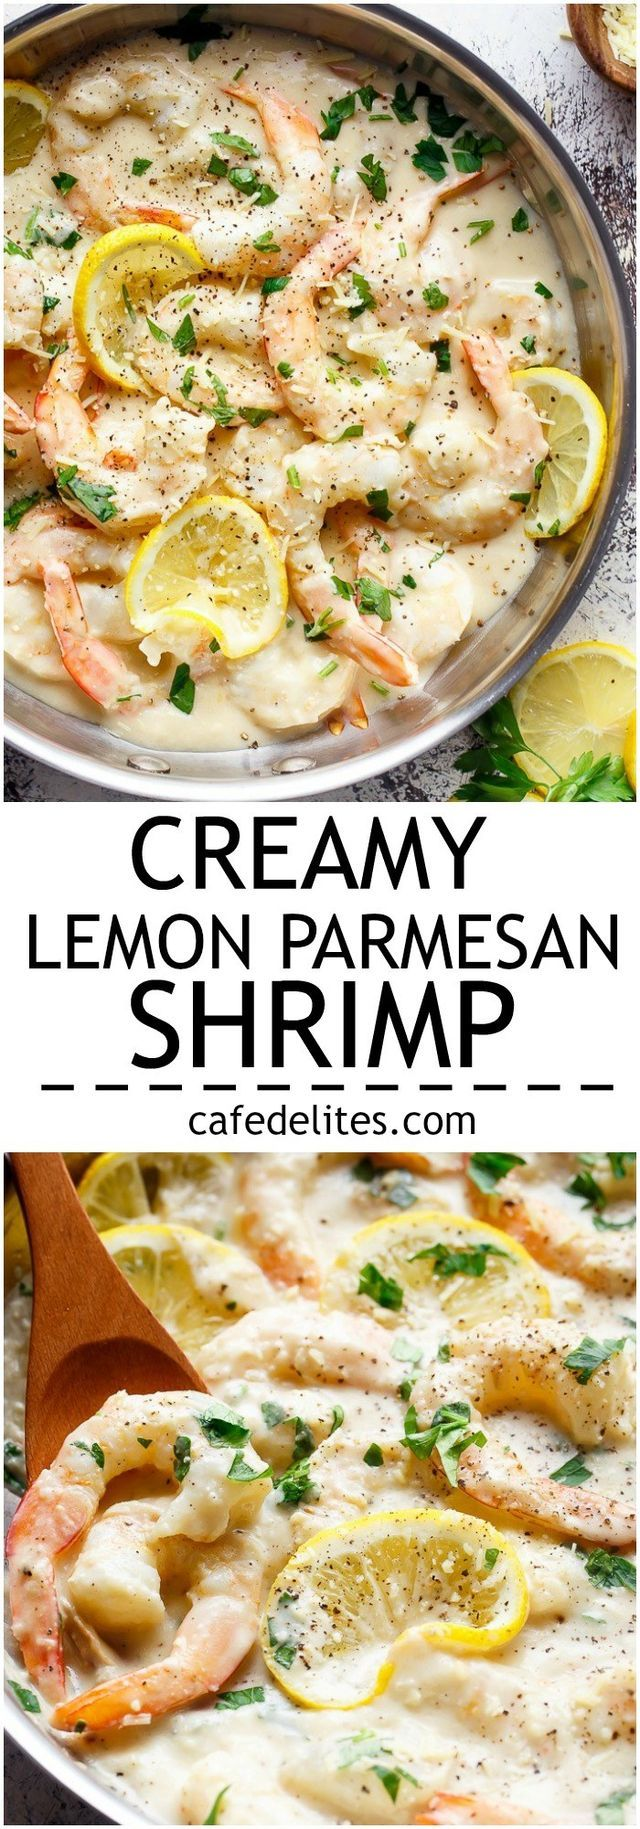 Creamy Lemon Parmesan Shrimp Creamy Lemon Parmesan Shrimp is a restaurant quality gourmet meal! Only minutes to make and full of lemon parmesan flavours with a good kick of garlic and NO HEAVY CREAMS!